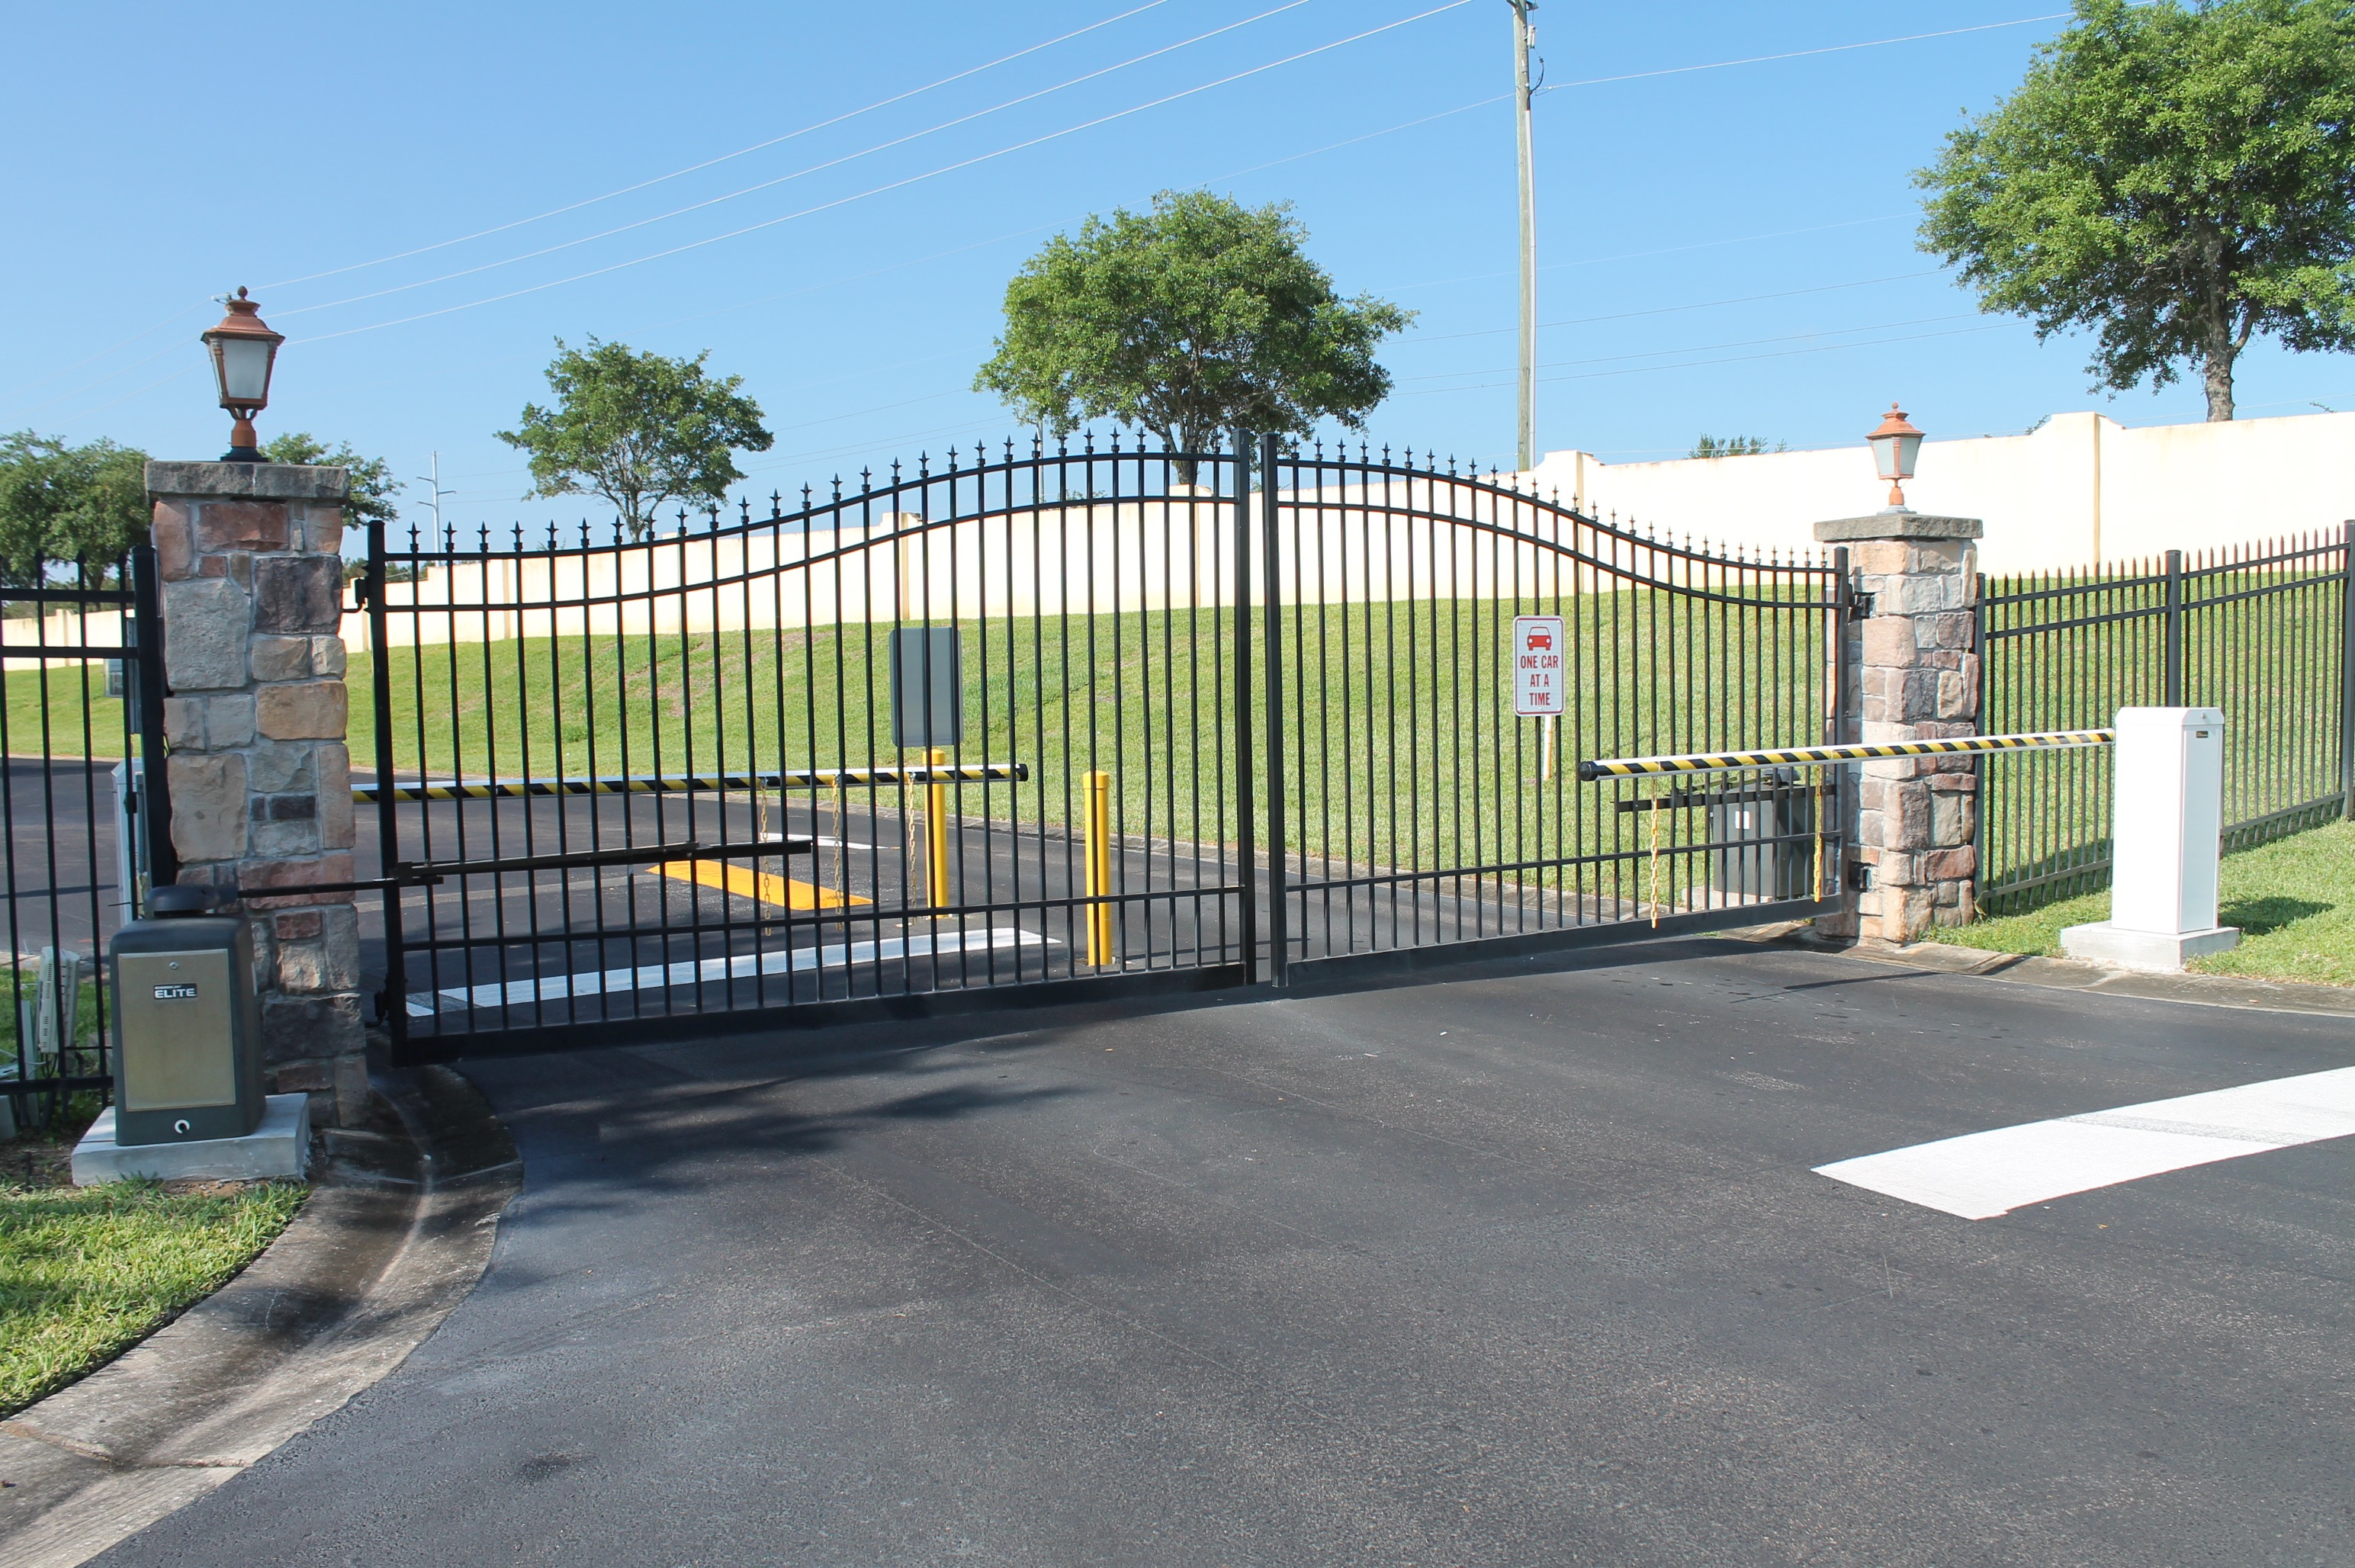 The community gate at Tuscan Hills